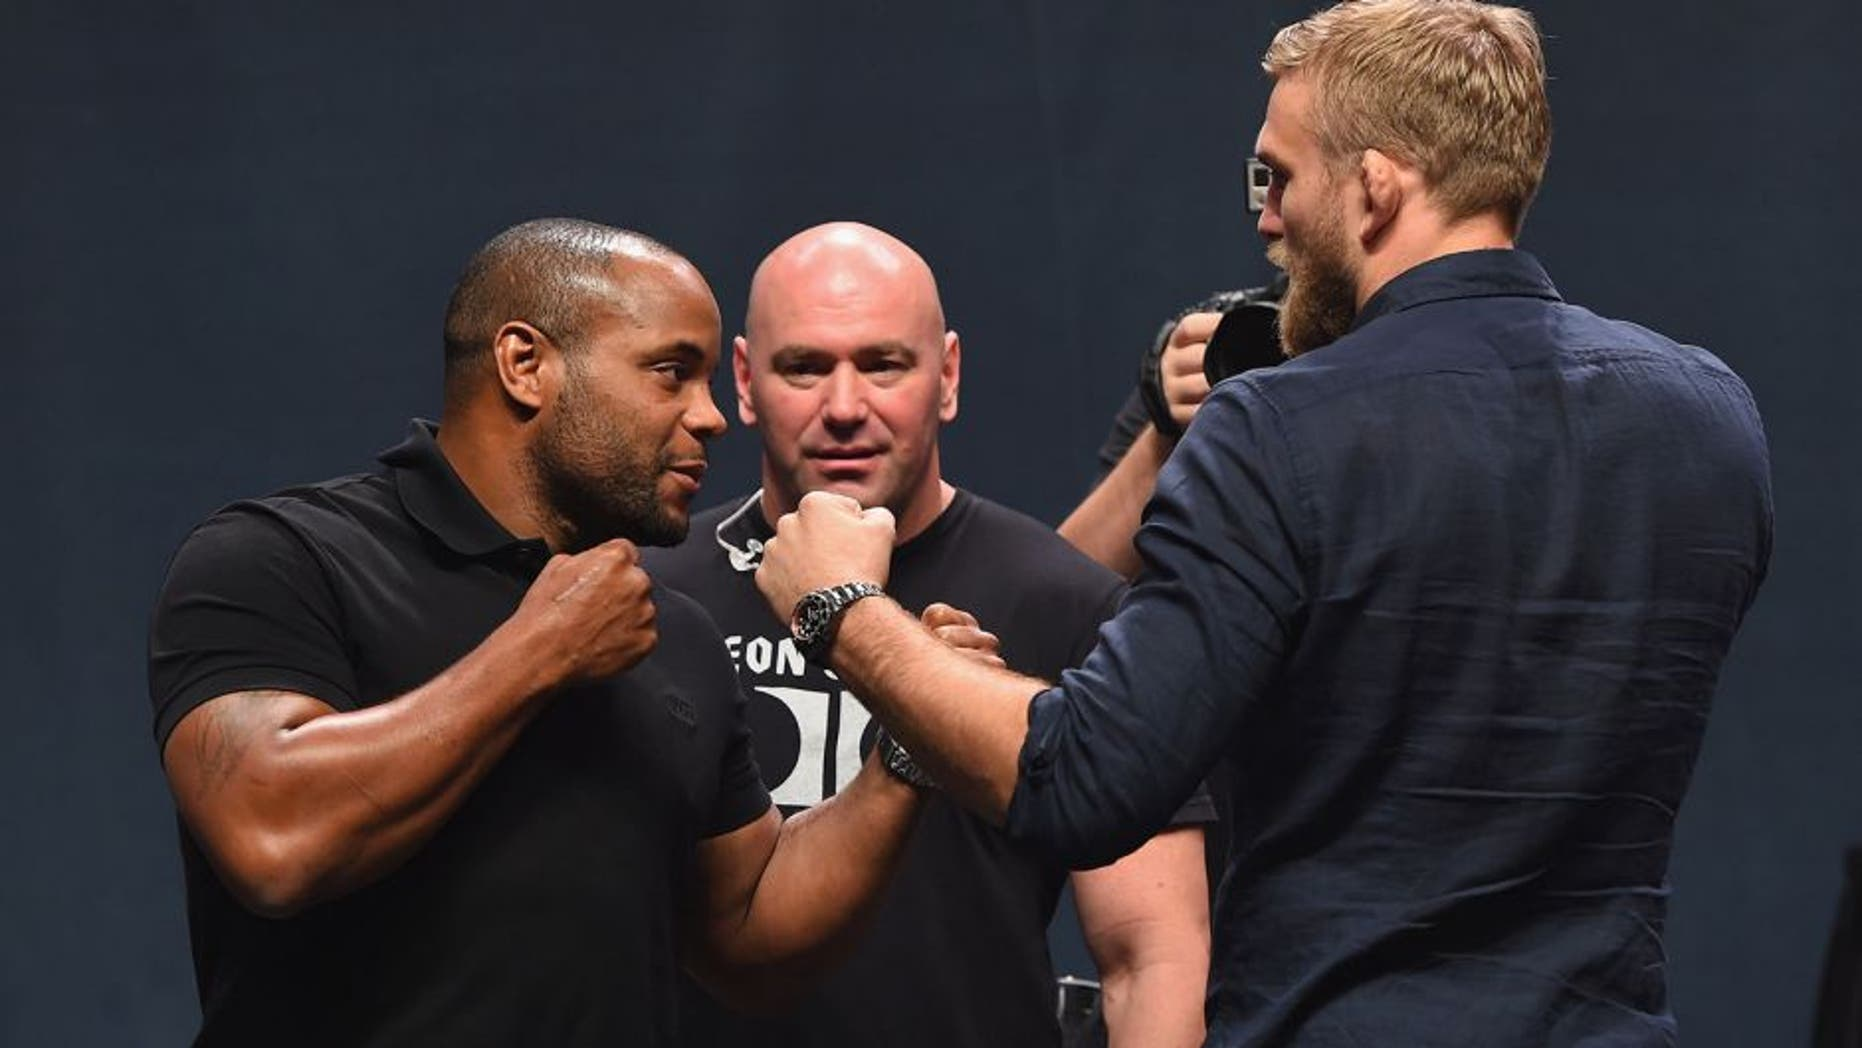 LAS VEGAS, NV - SEPTEMBER 04: (L-R) UFC light heavyweight champion Daniel Cormier and Alex Gustafsson face off during the UFC's Go Big launch event inside MGM Grand Garden Arena on September 4, 2015 in Las Vegas, Nevada. (Photo by Josh Hedges/Zuffa LLC/Zuffa LLC via Getty Images)